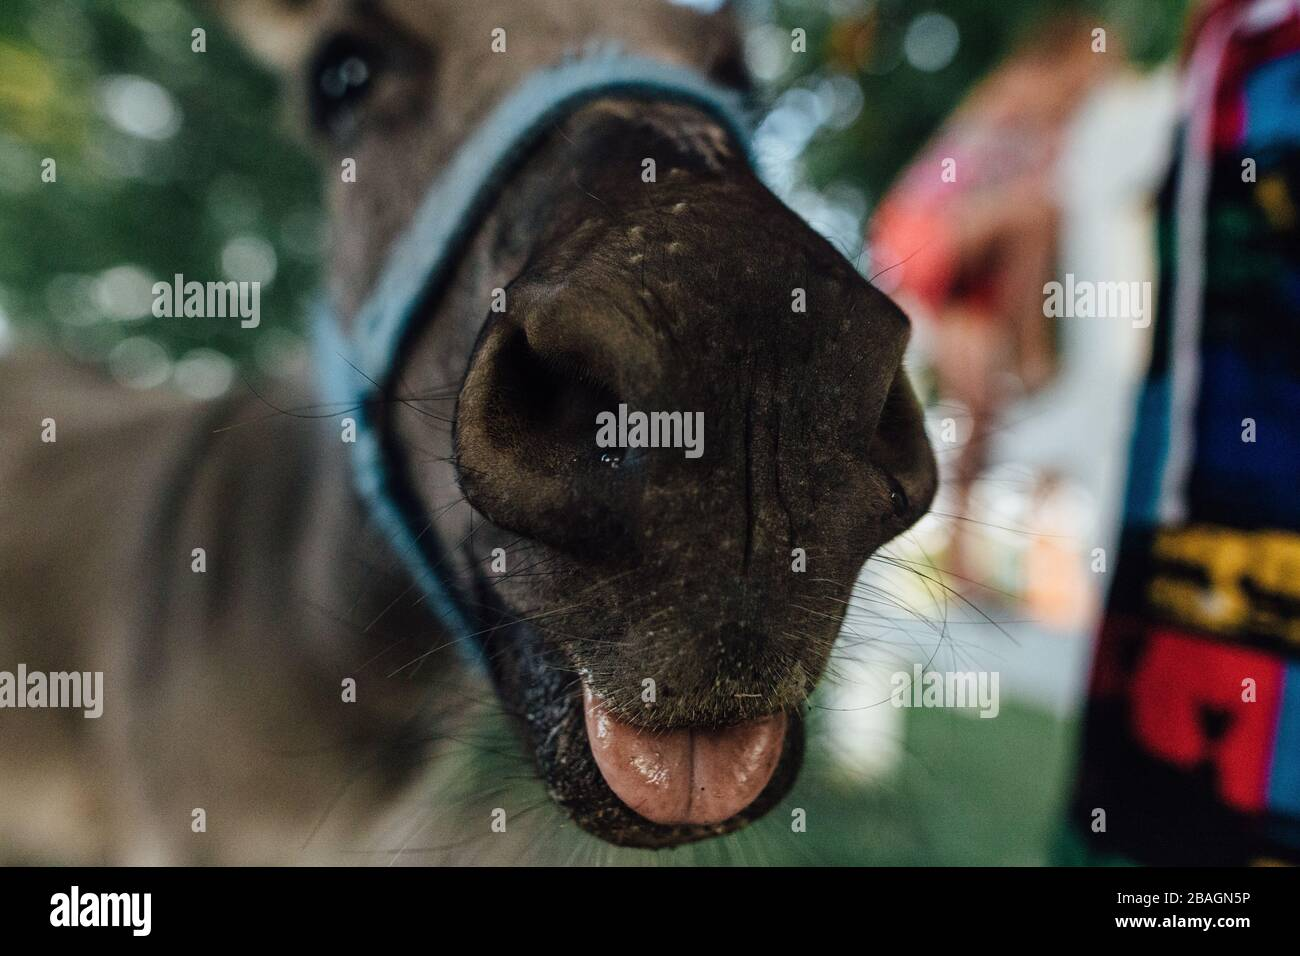 Donkey's nose up close with tongue out Stock Photo